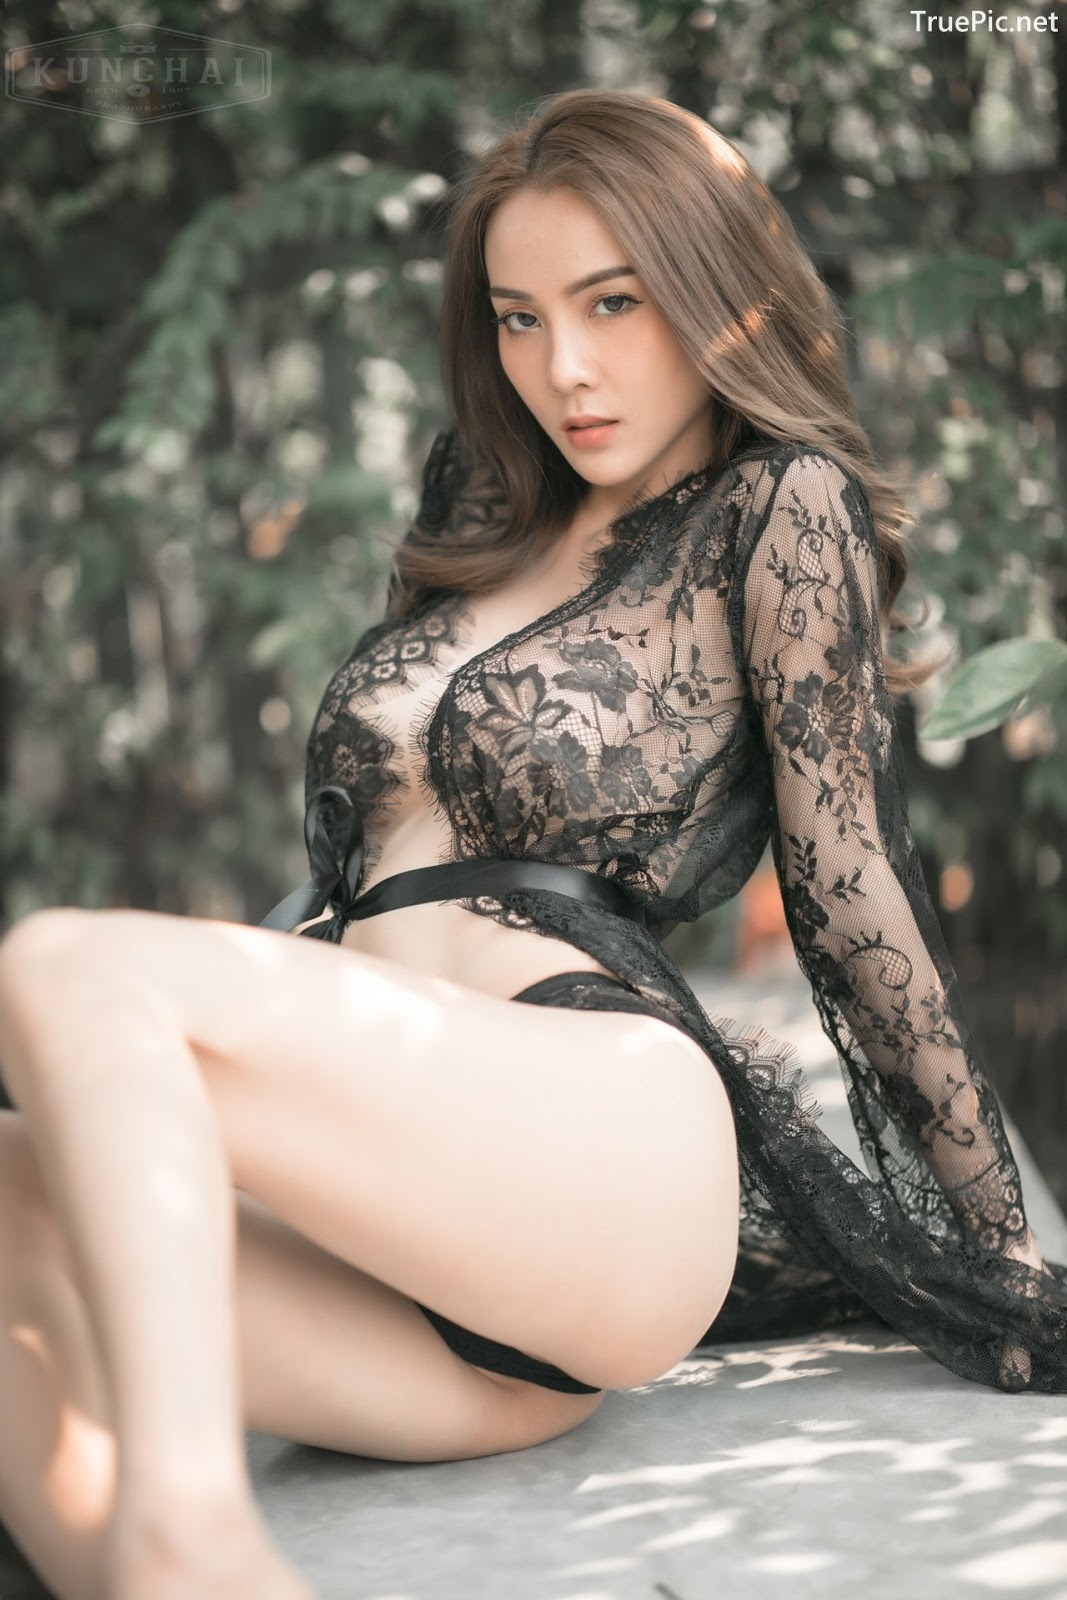 Image Thailand Sexy Model - Soraya Upaiprom - Black Lace Lingerie - TruePic.net - Picture-2